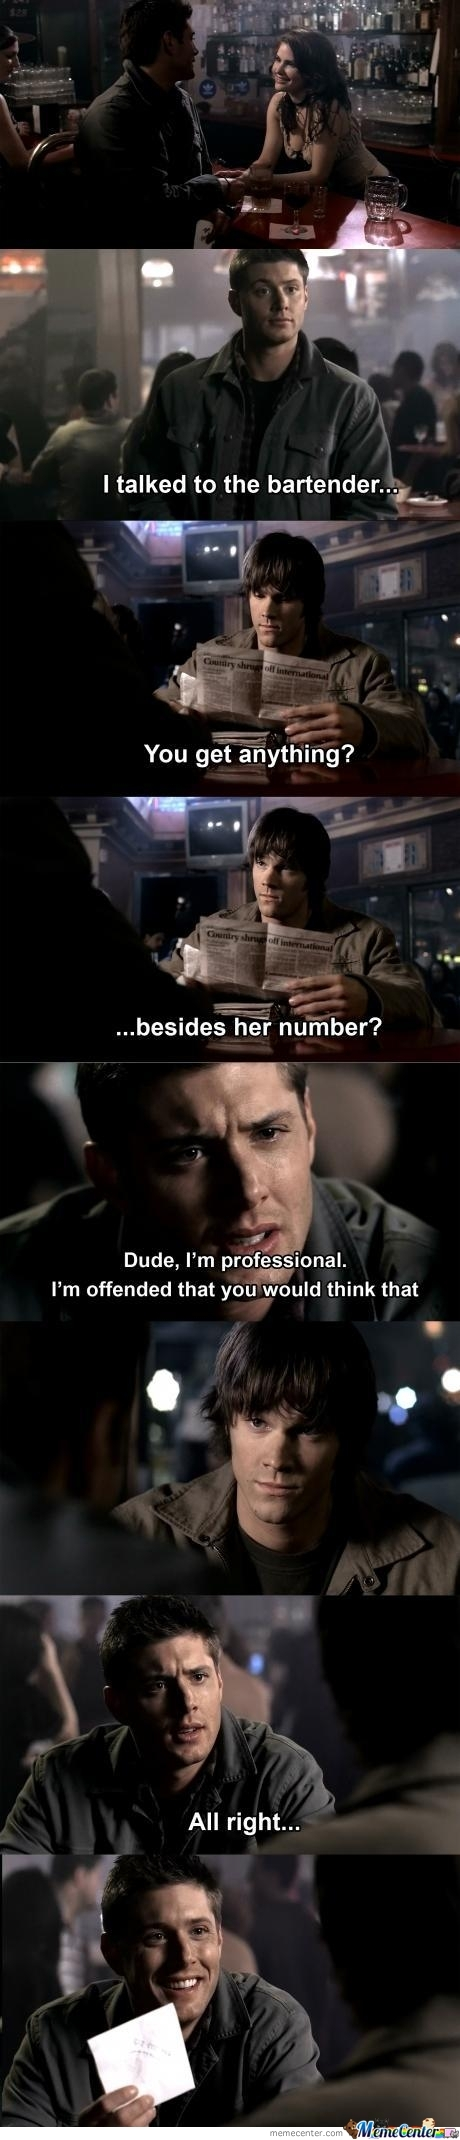 Just Dean Winchester Being... Well, Dean Winchester.